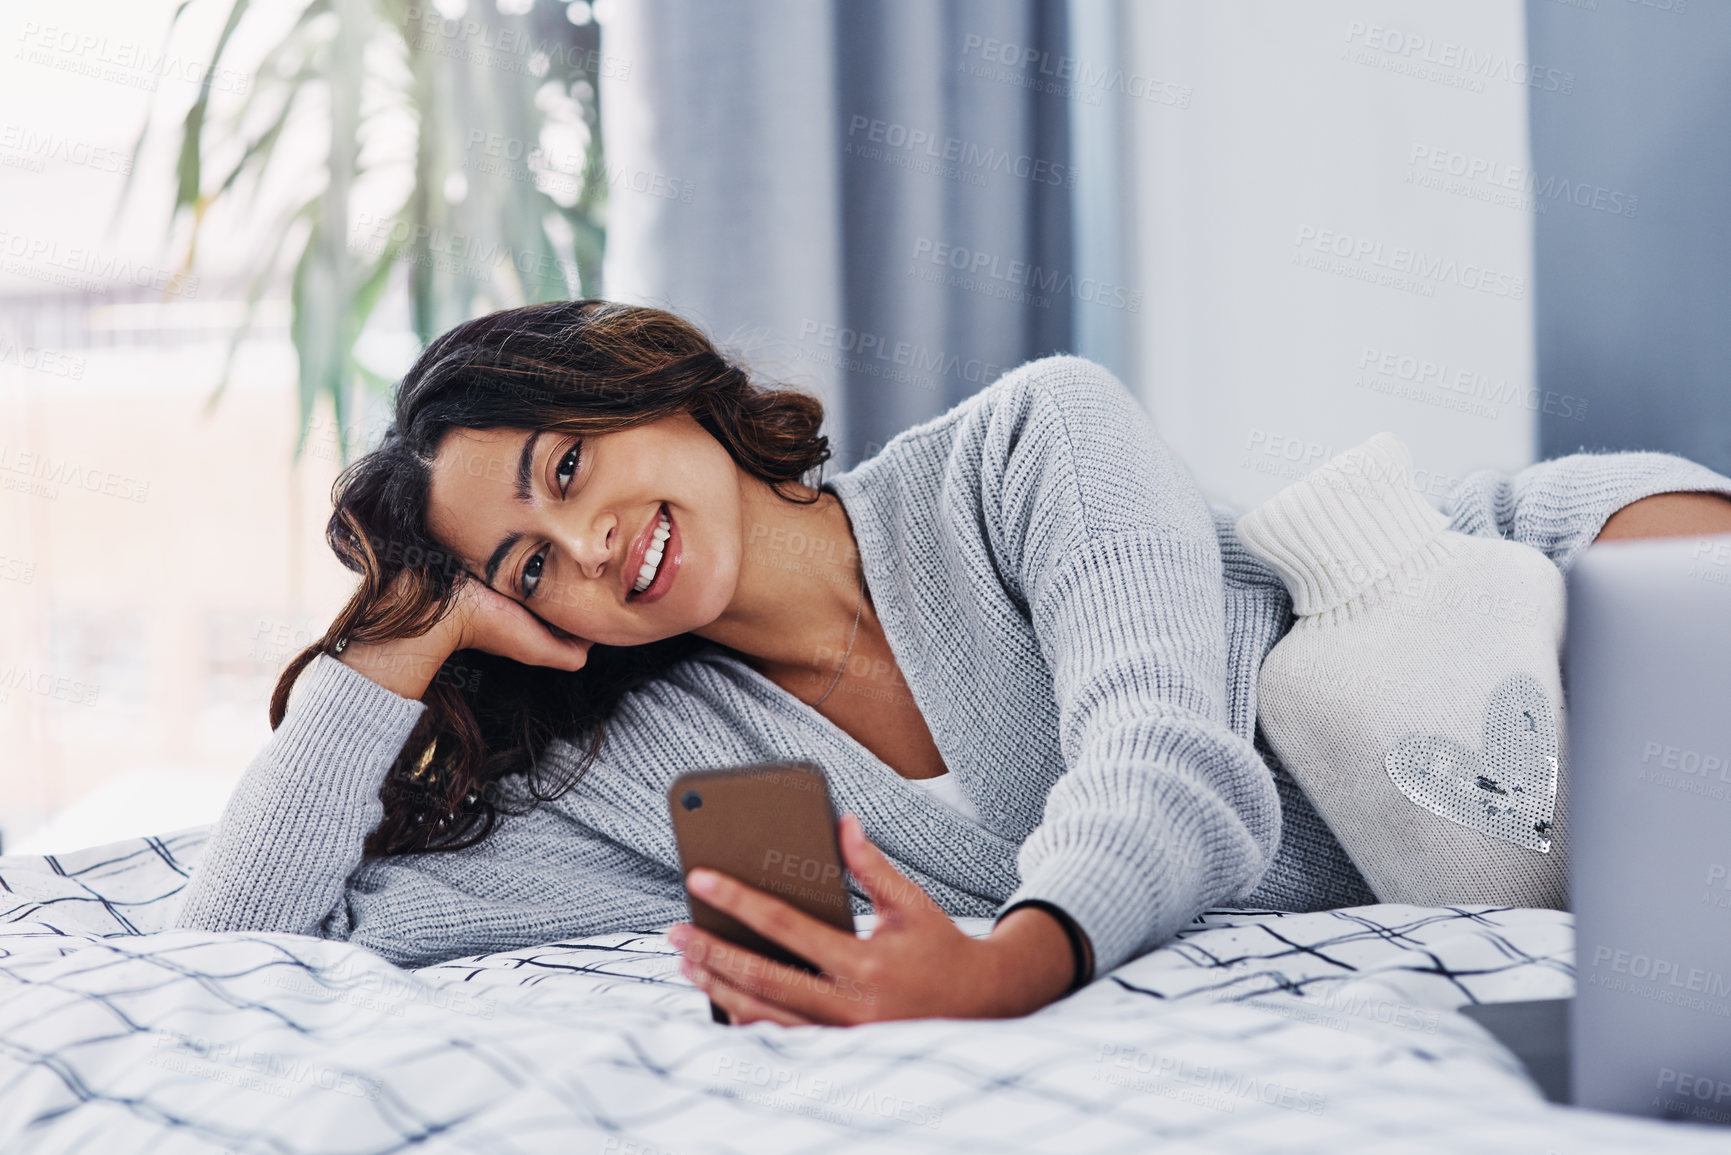 Buy stock photo Cropped portrait of an attractive young woman lying on her bed and using her cellphone while home alone